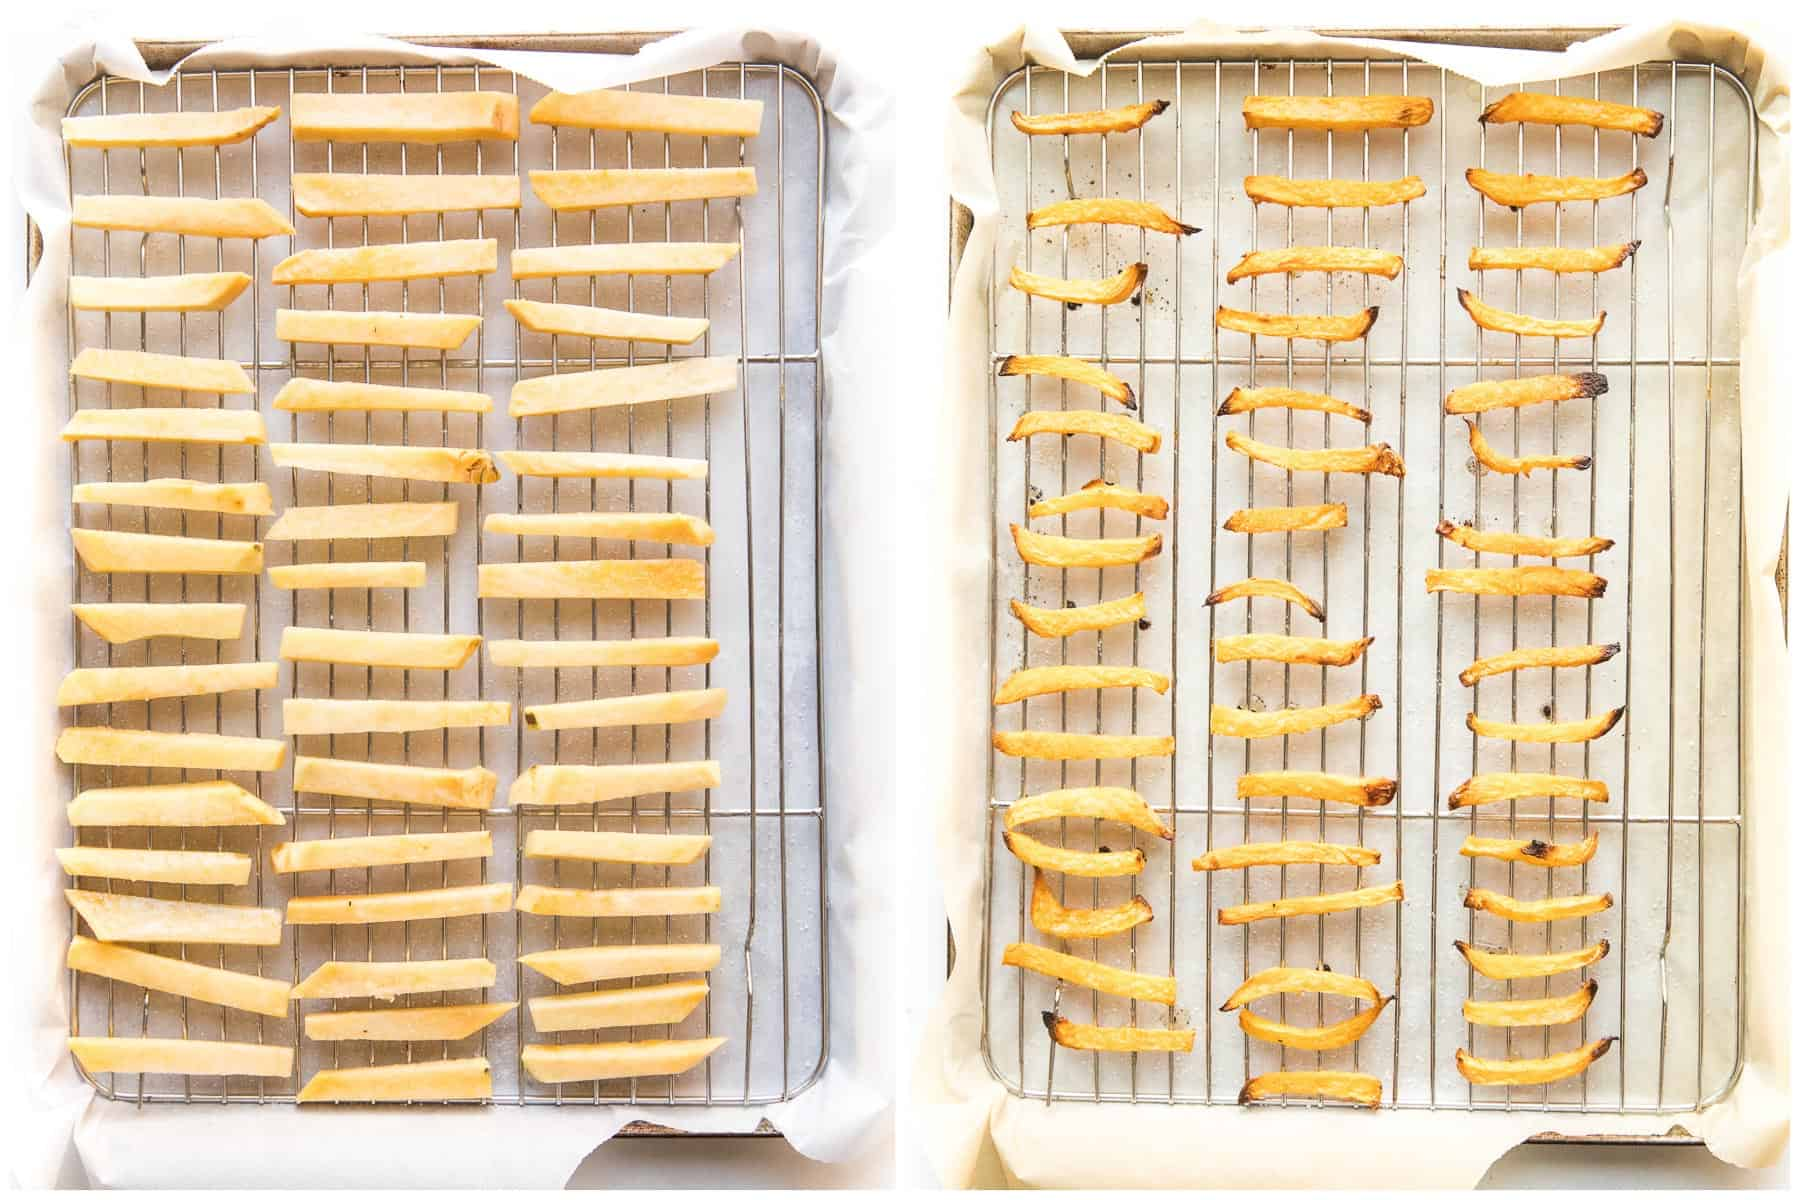 keto french fries on a wire baking rack